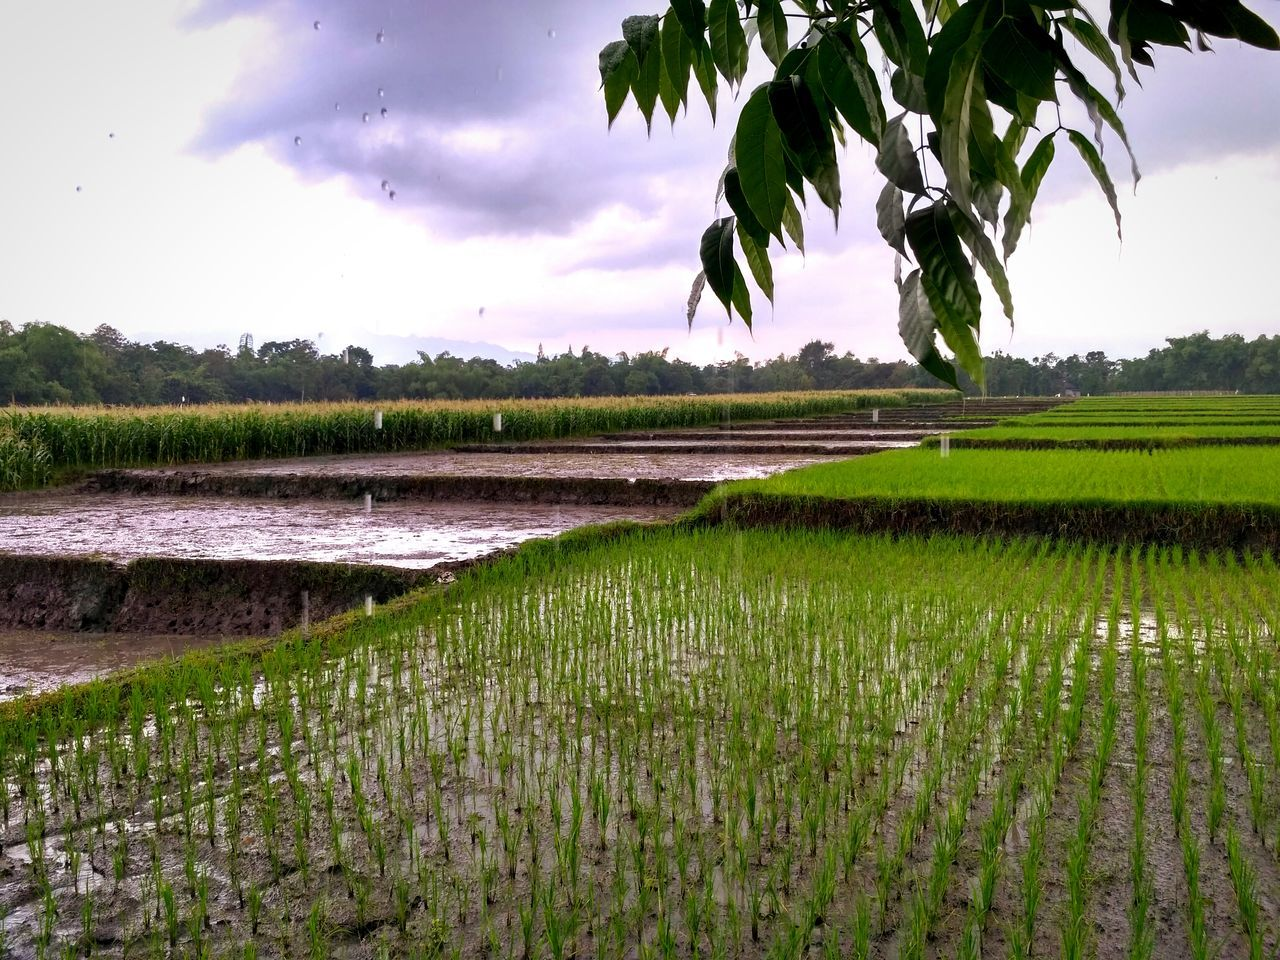 agriculture, growth, water, green color, crop, nature, field, rural scene, scenics, beauty in nature, sky, rice paddy, tree, tranquil scene, no people, rice - cereal plant, leaf, outdoors, tranquility, plant, day, banana tree